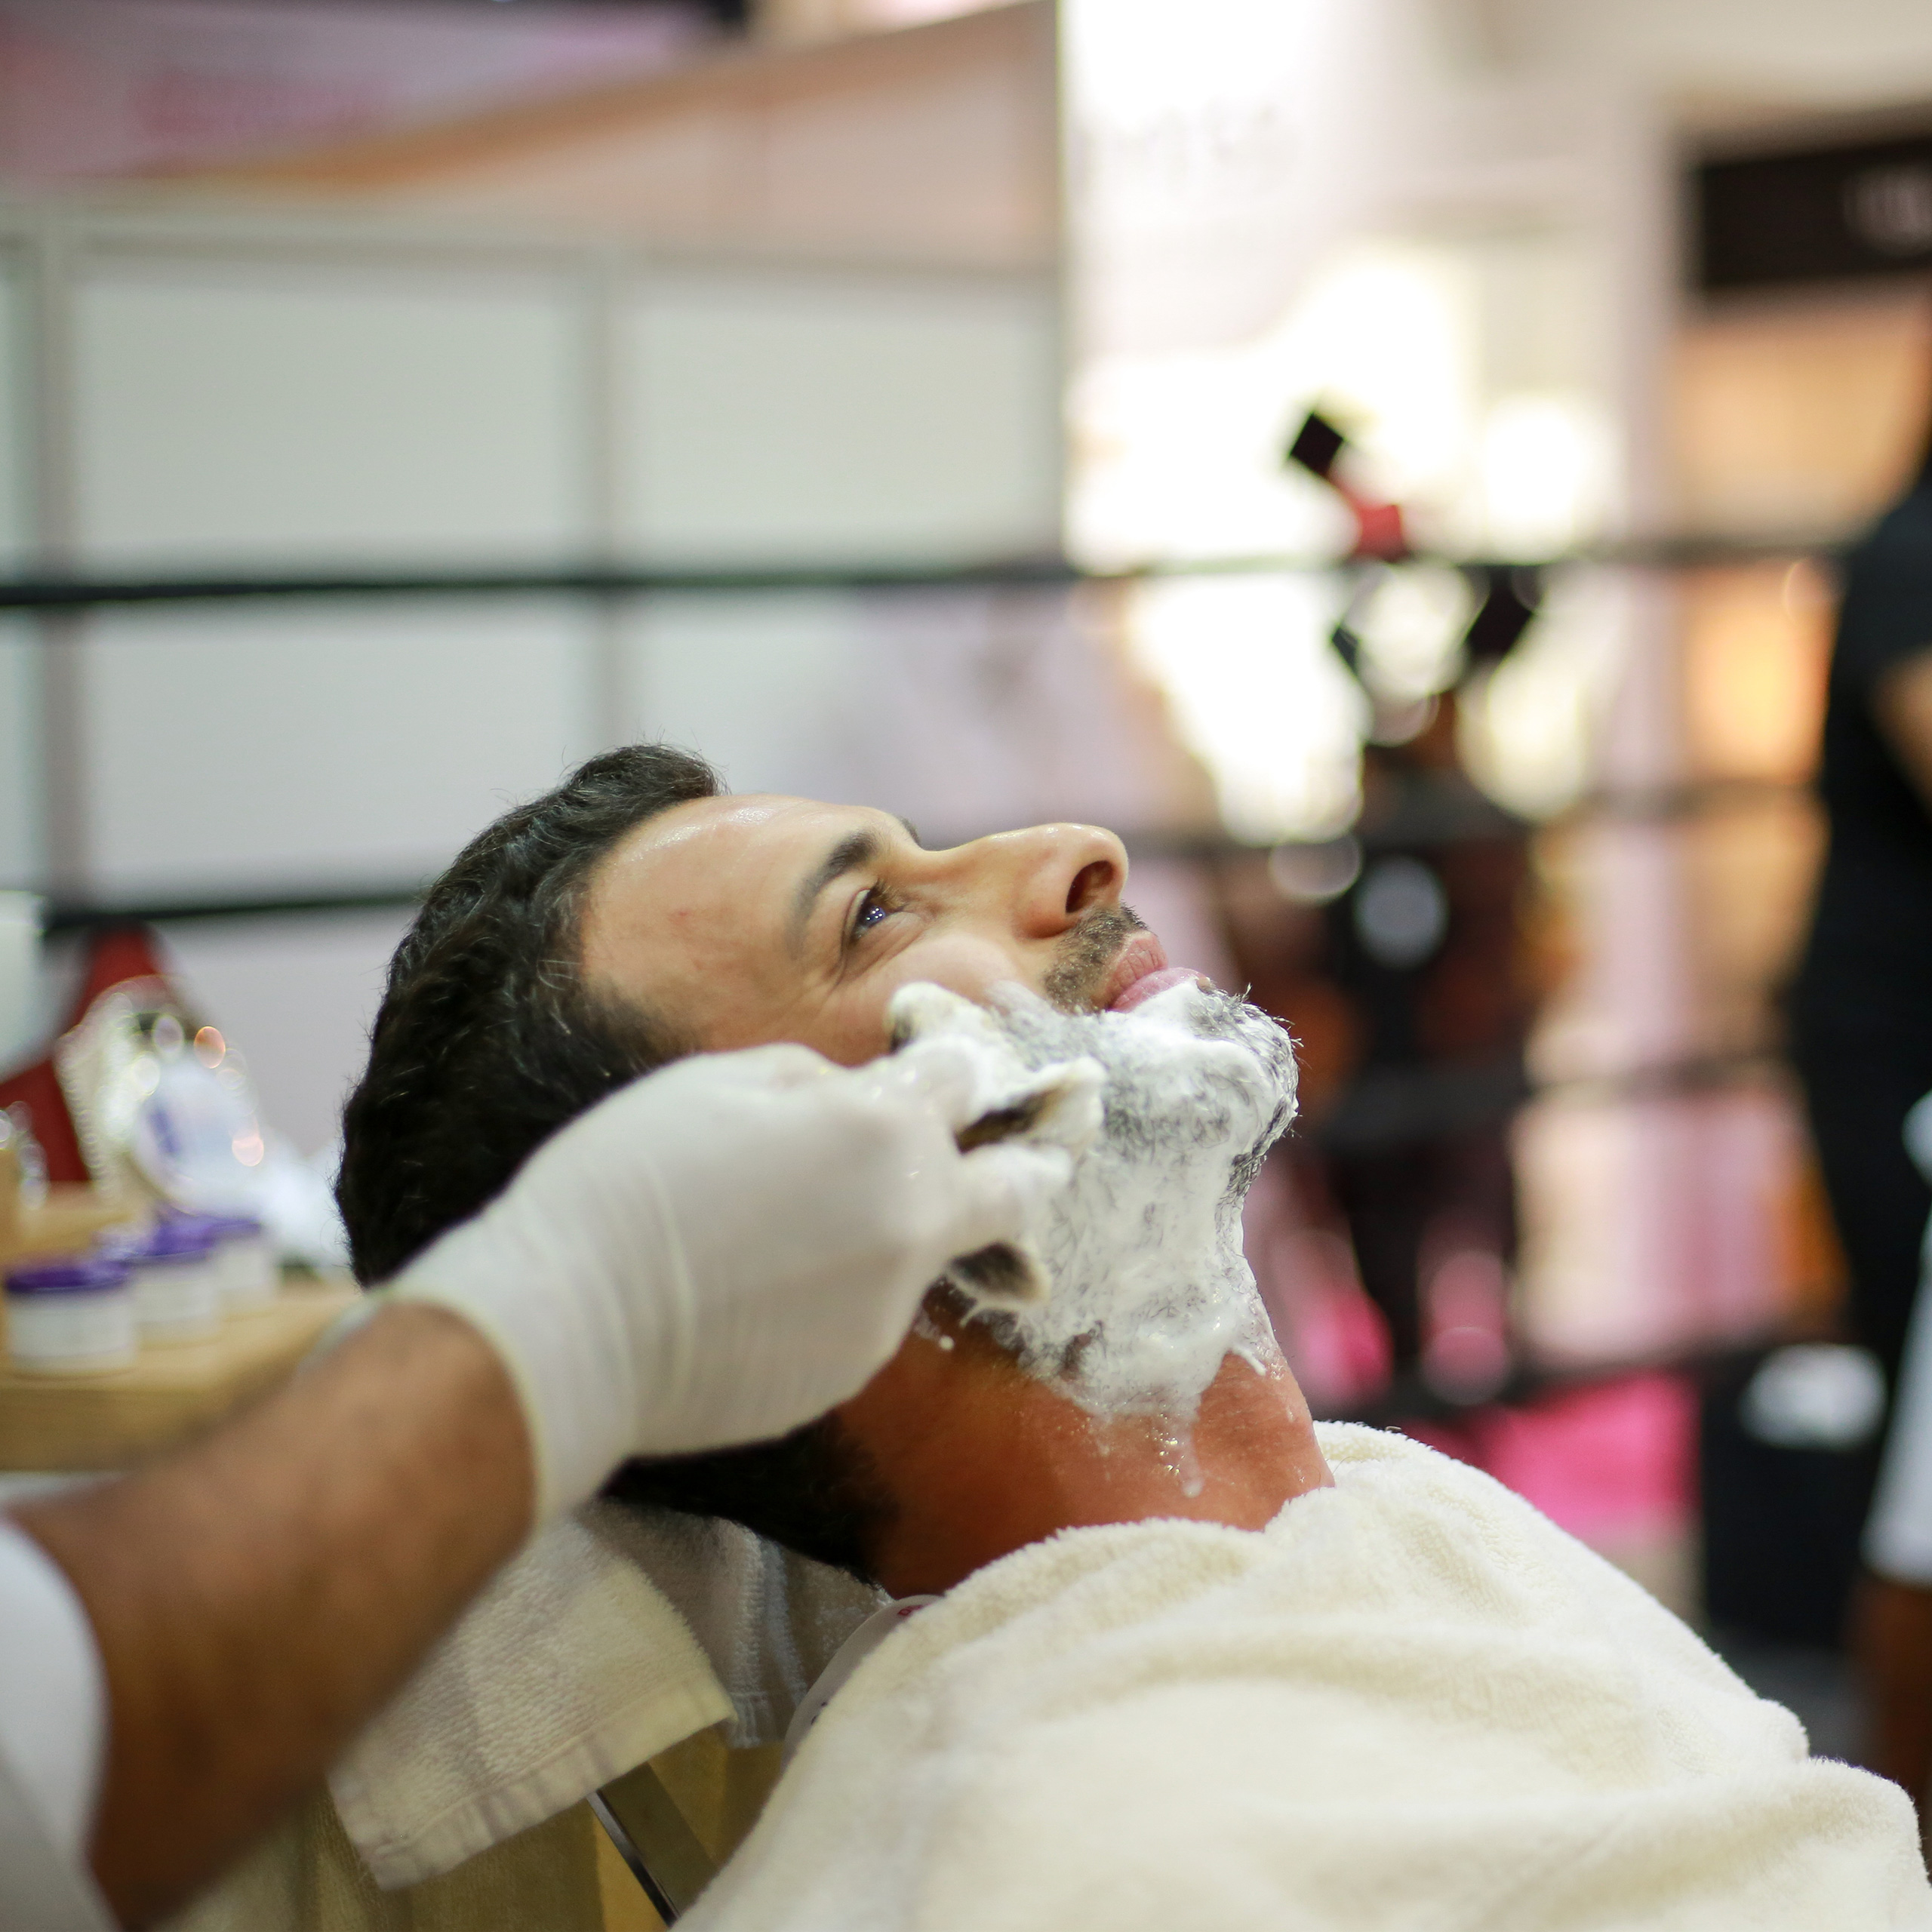 Beautyworld Middle East - UAE's finest barbers square off in live competition at Beautyworld Middle East 2017